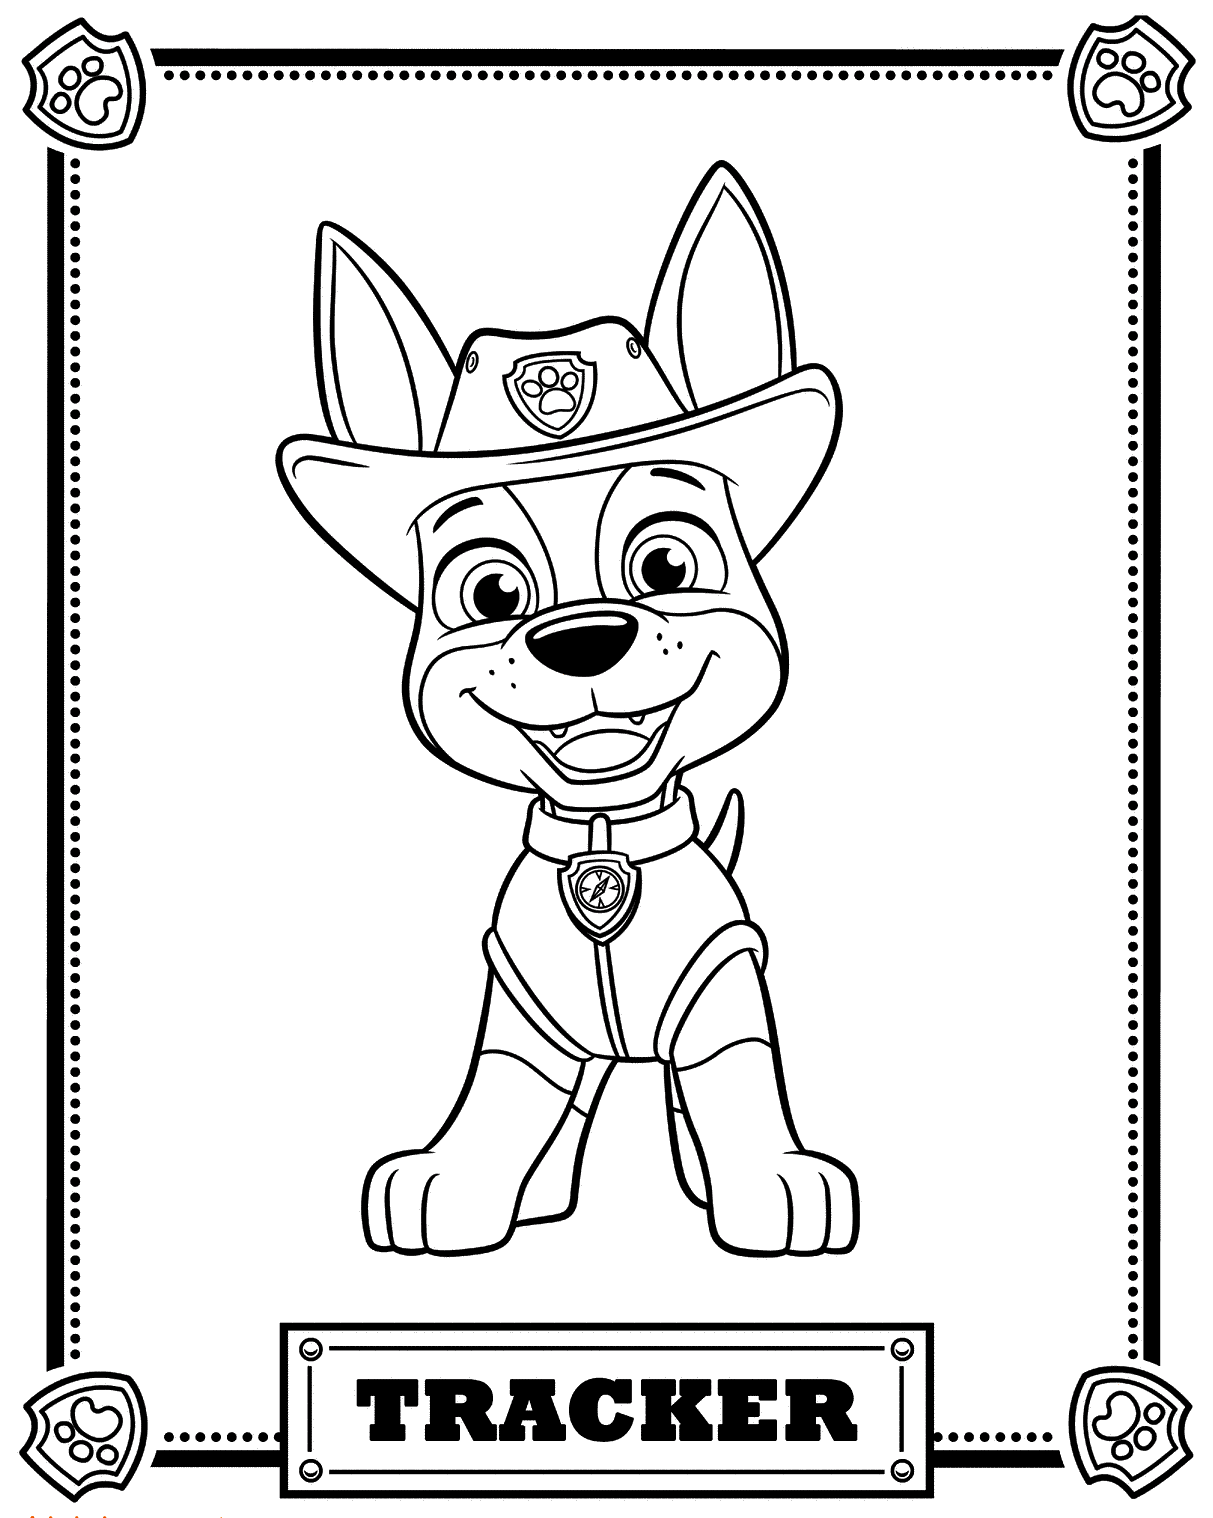 paw patrol coloring pages chase paw patrol coloring pages to download and print for free coloring patrol paw pages